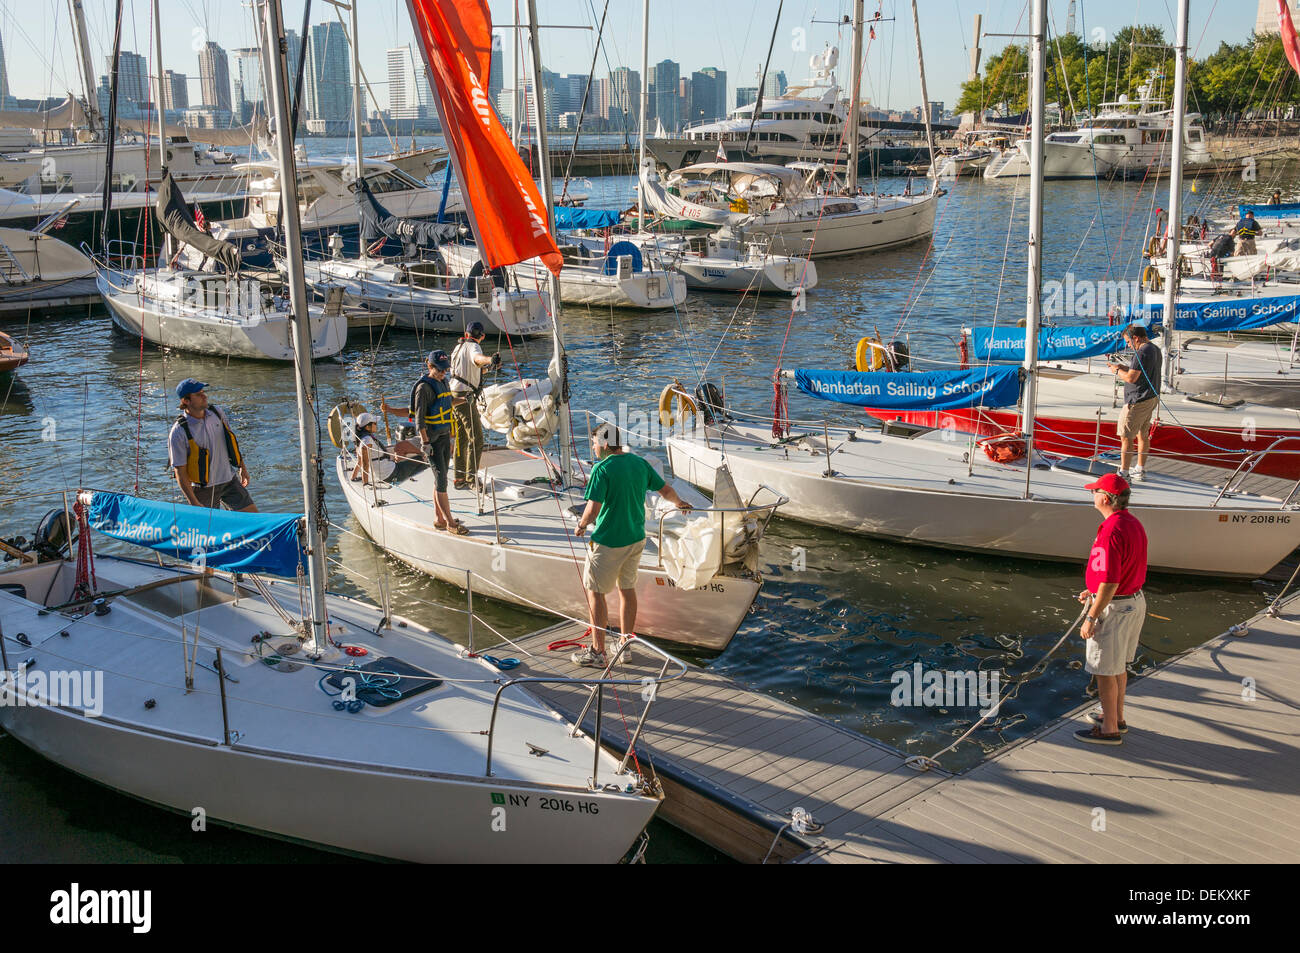 manhattan-sailing-school-in-north-cove-i